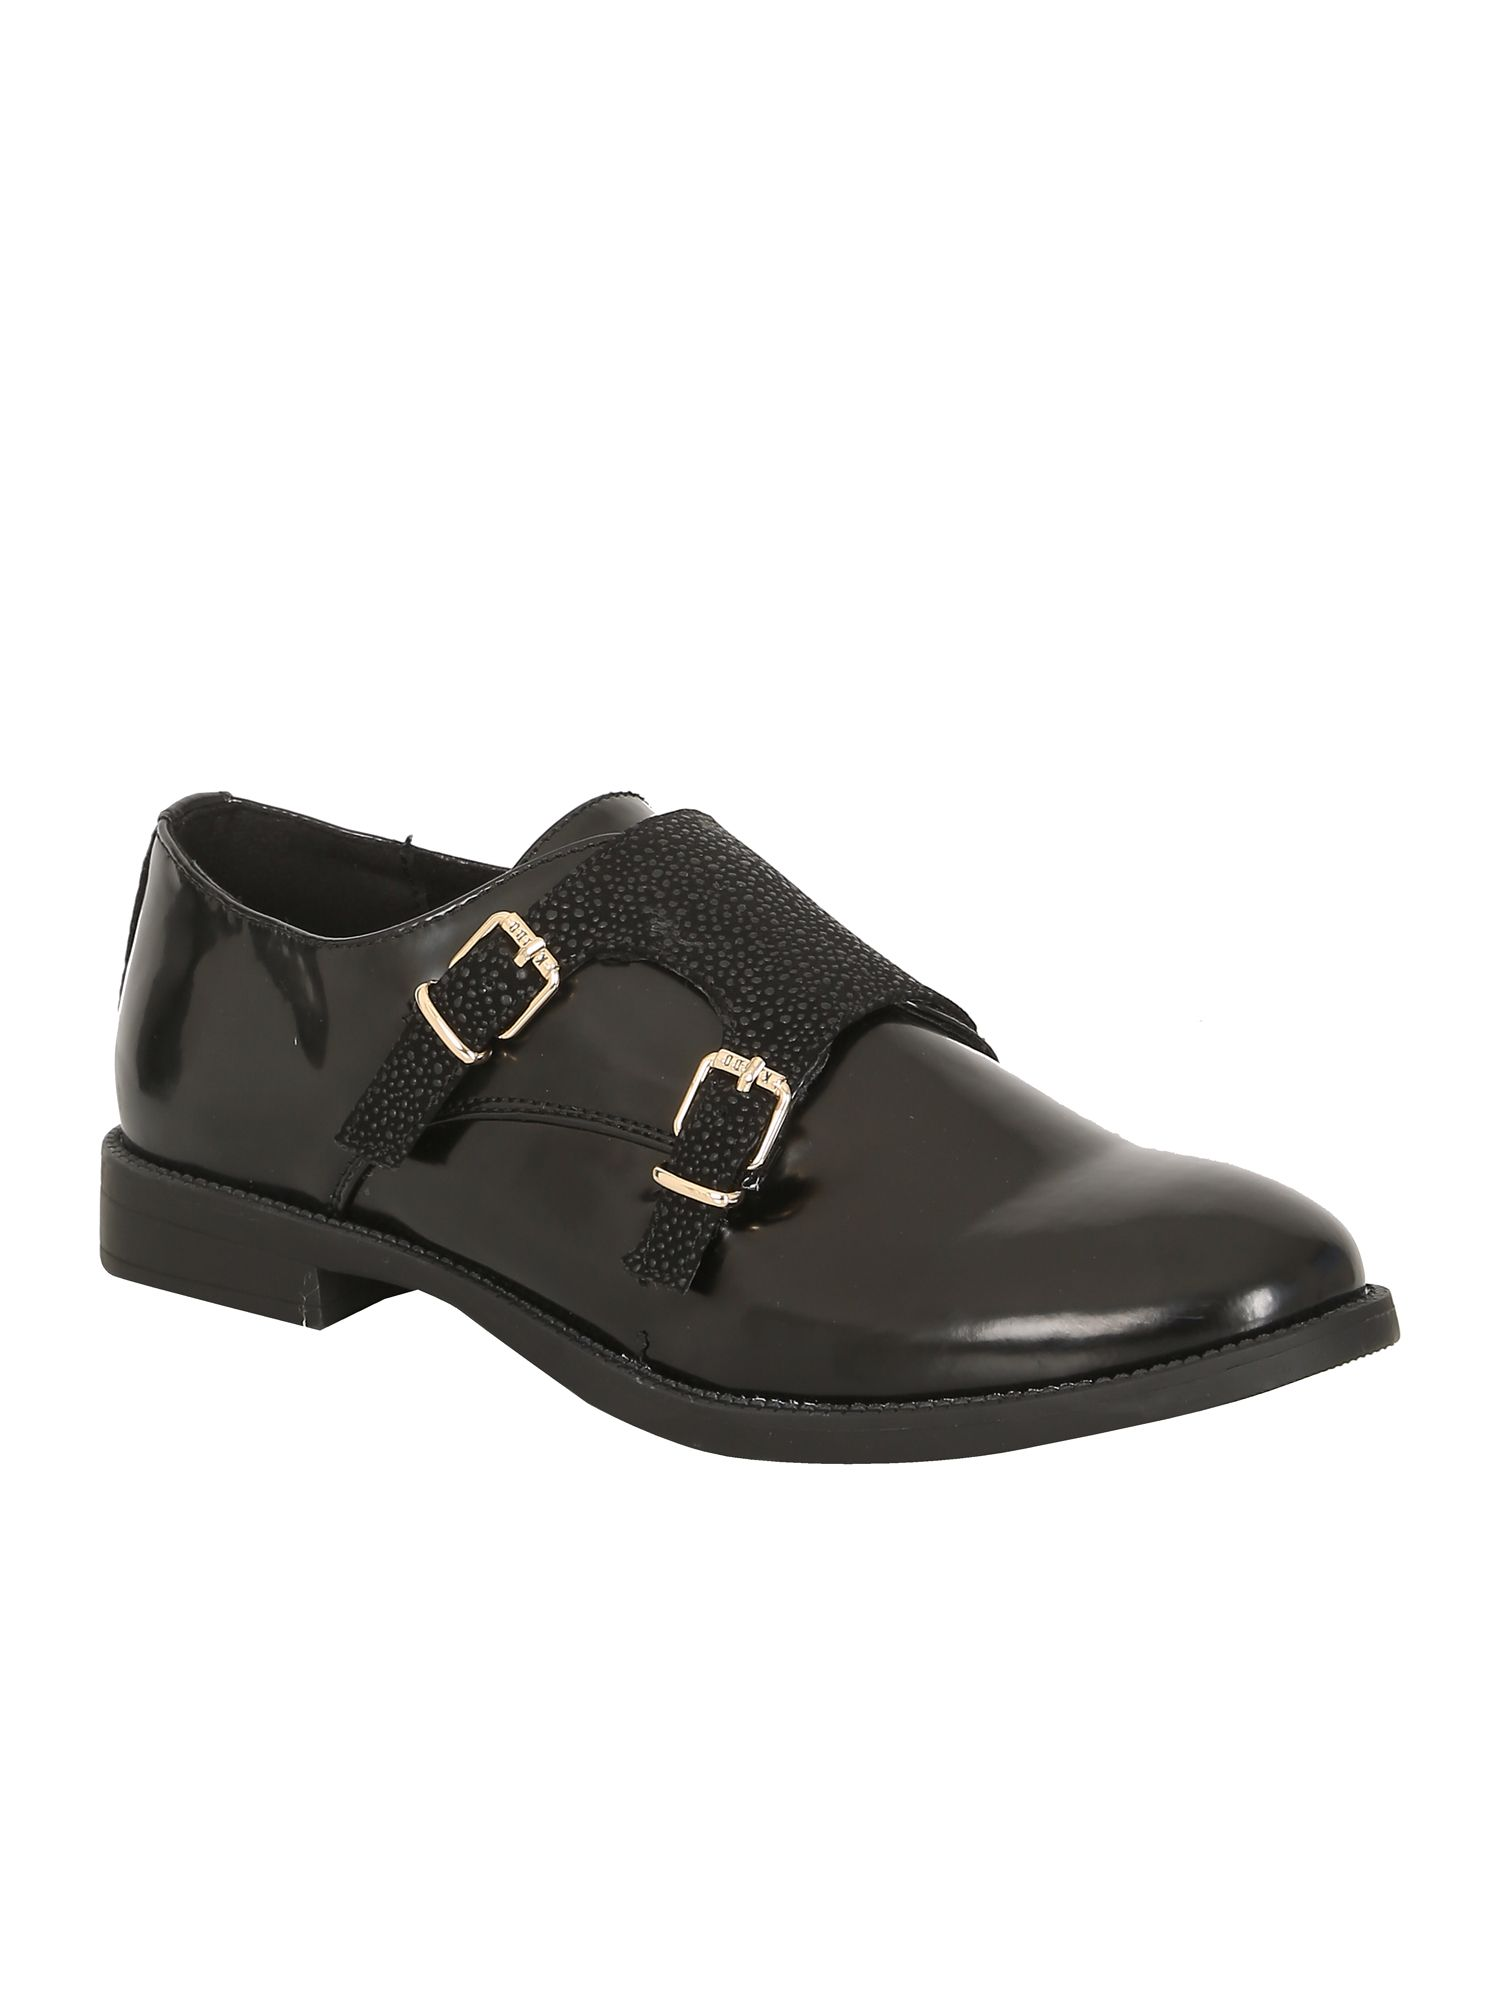 Keddo Keddo Monk strap shoe, Black